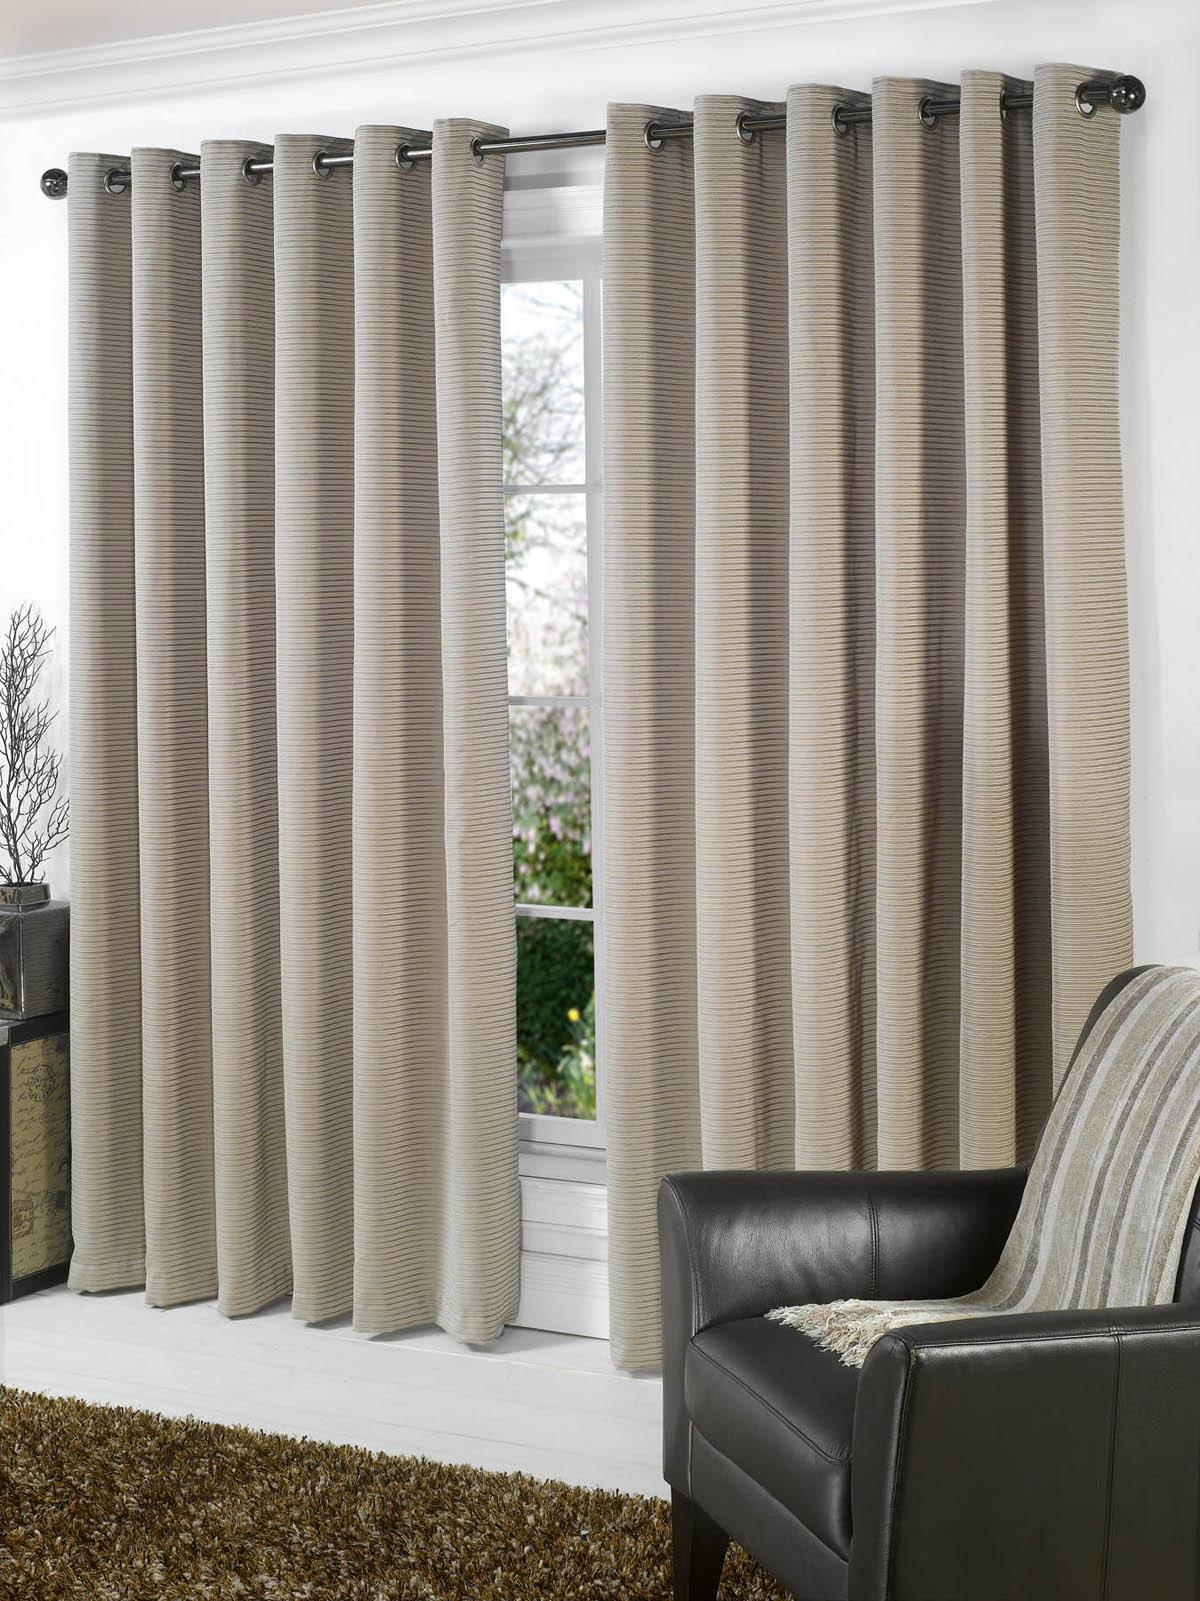 is top itm loading colours curtain luxury range made backed sizes thermal curtains lining image tape of ready simply